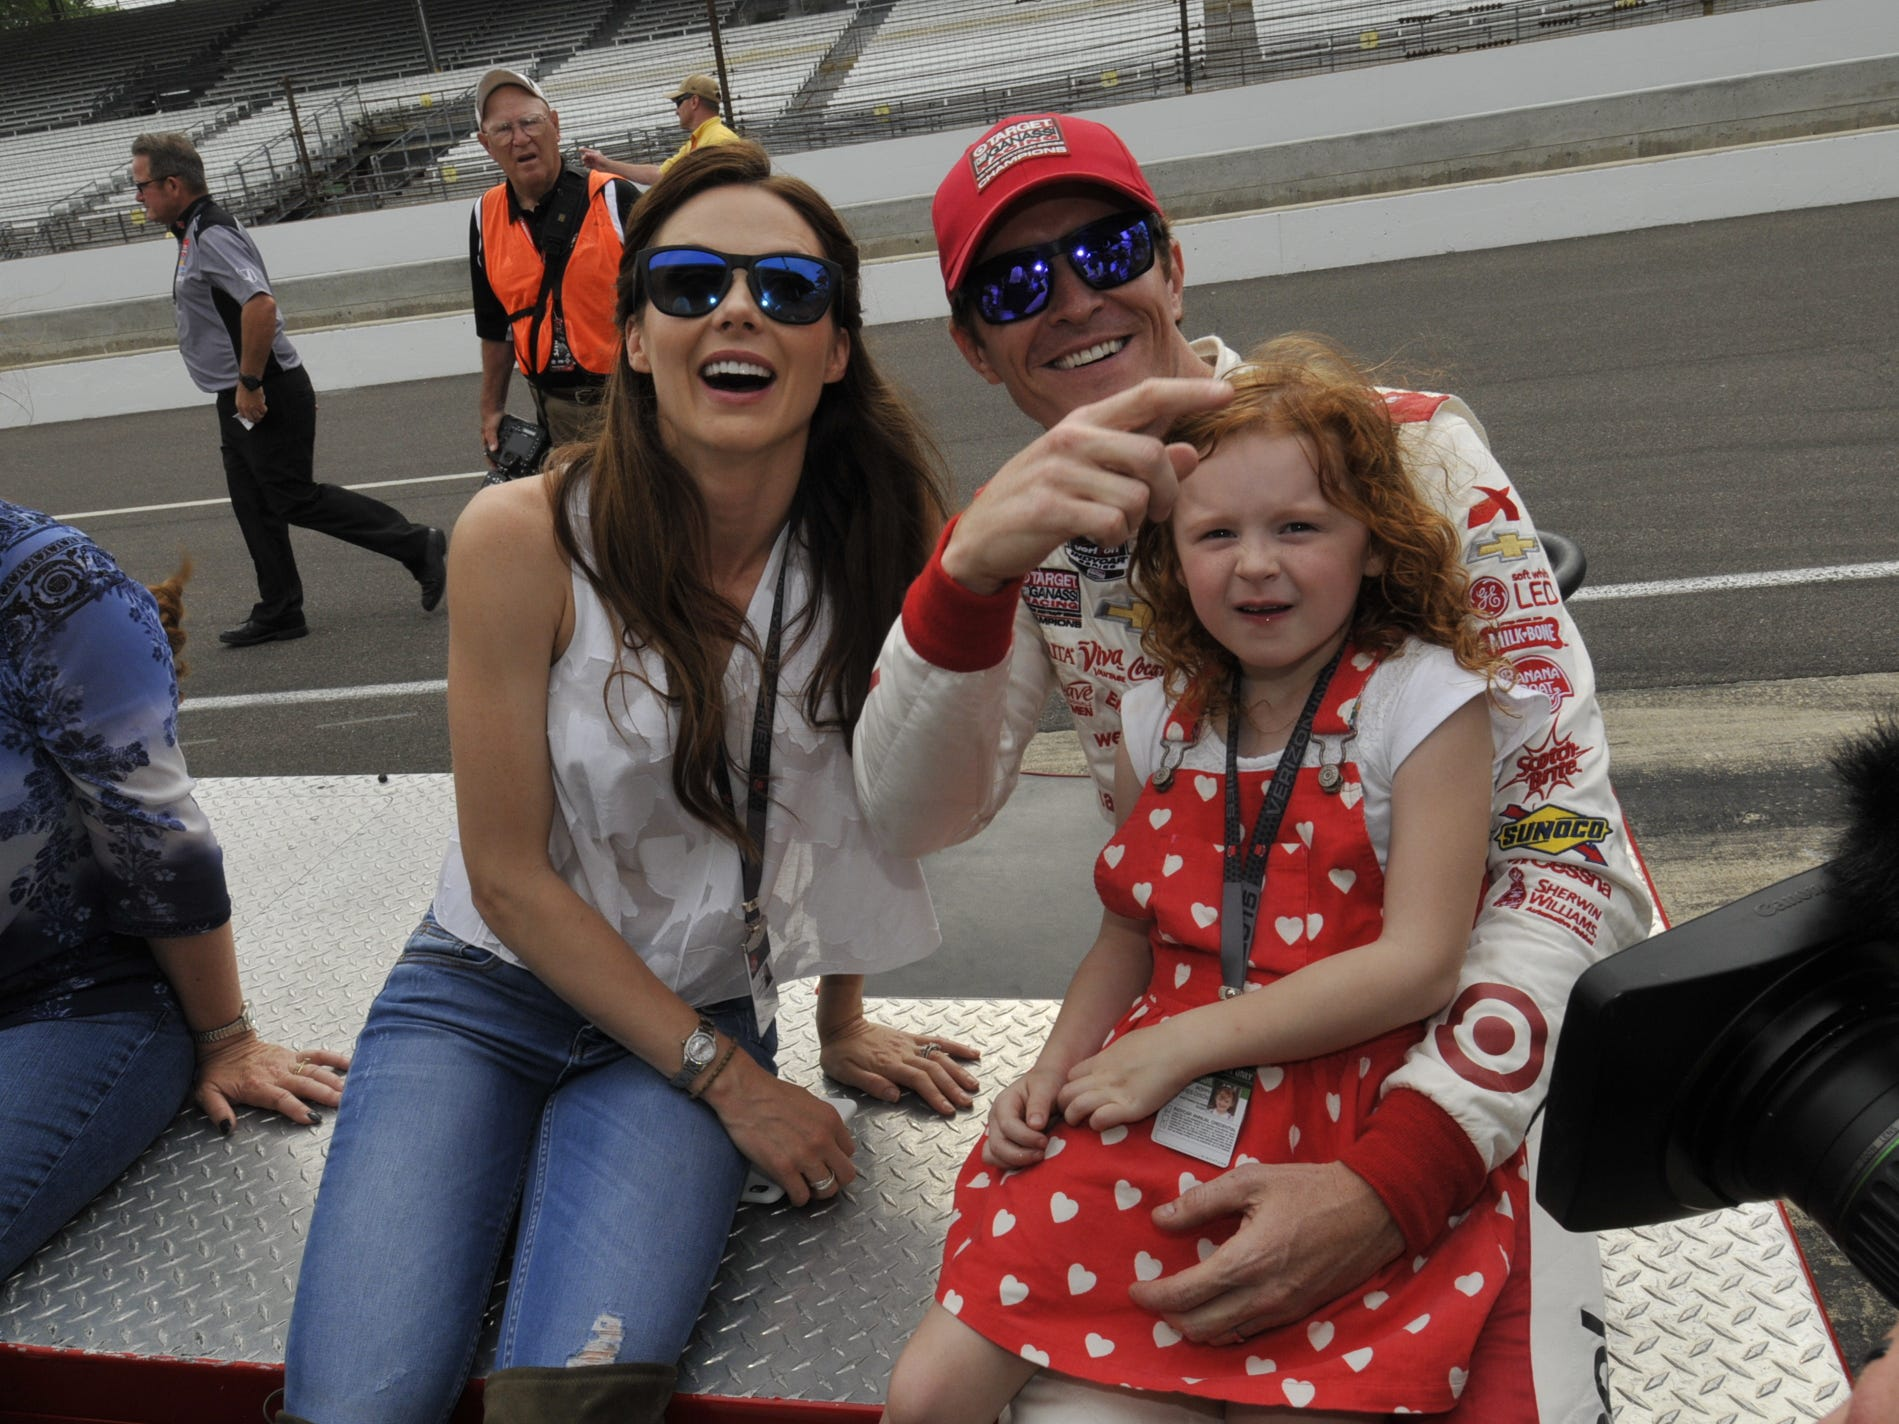 Emma, Scott, and Poppy Dixon celebrate winning Scott Dixon's winning the pole for the Indianapolis 500 on Sunday May17th, 2015.